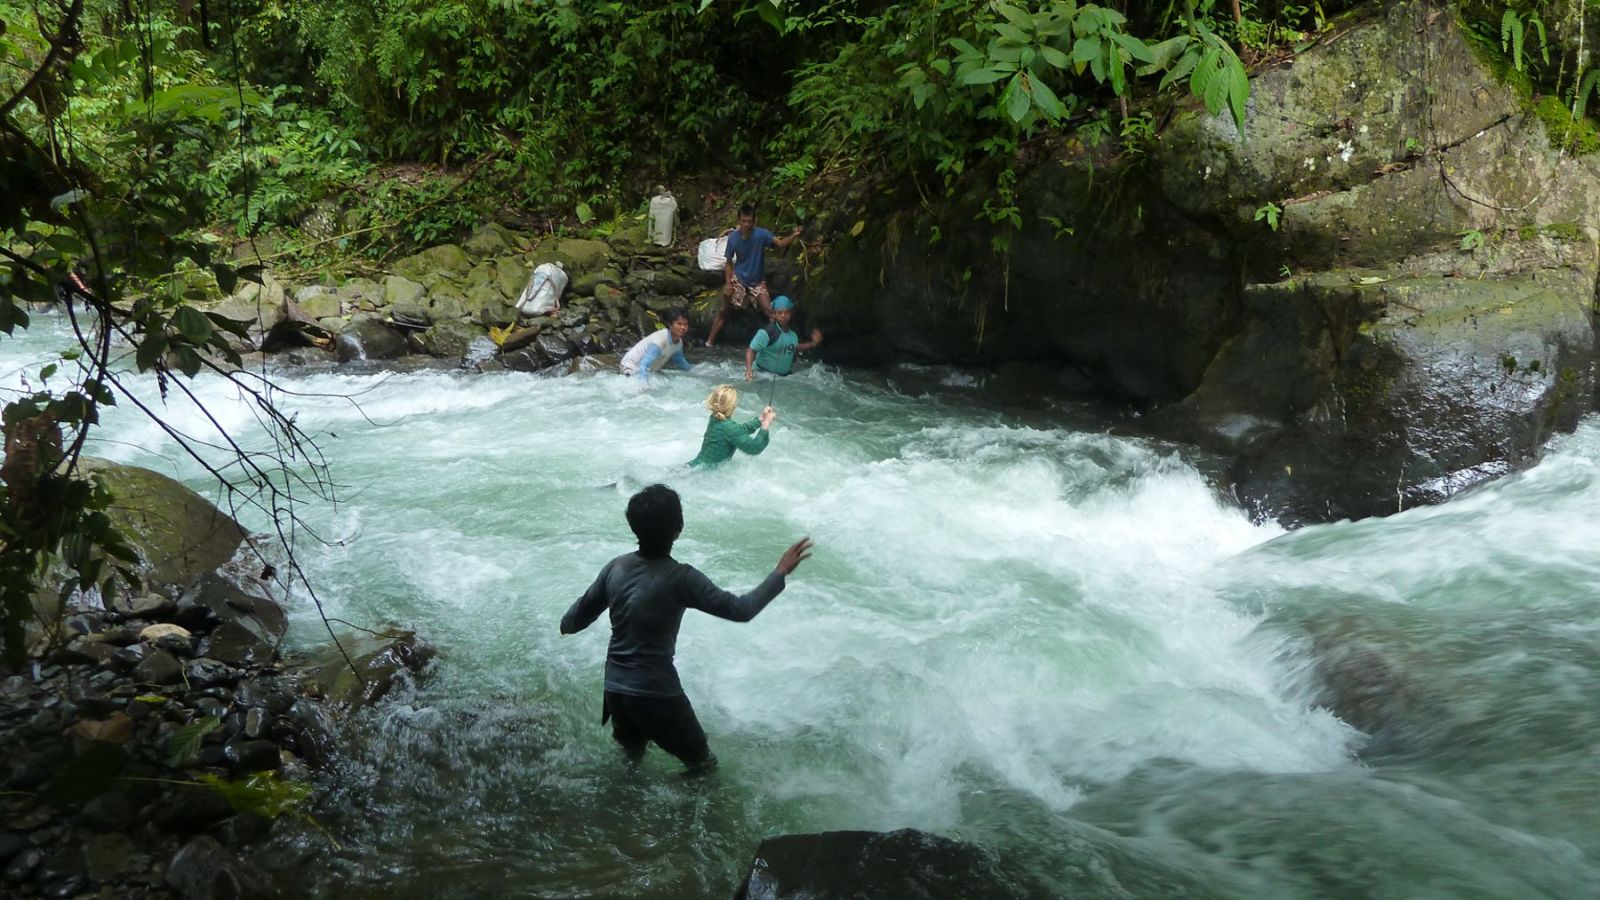 image of a hiker in gunung leuser national park crossing a river on a rope.